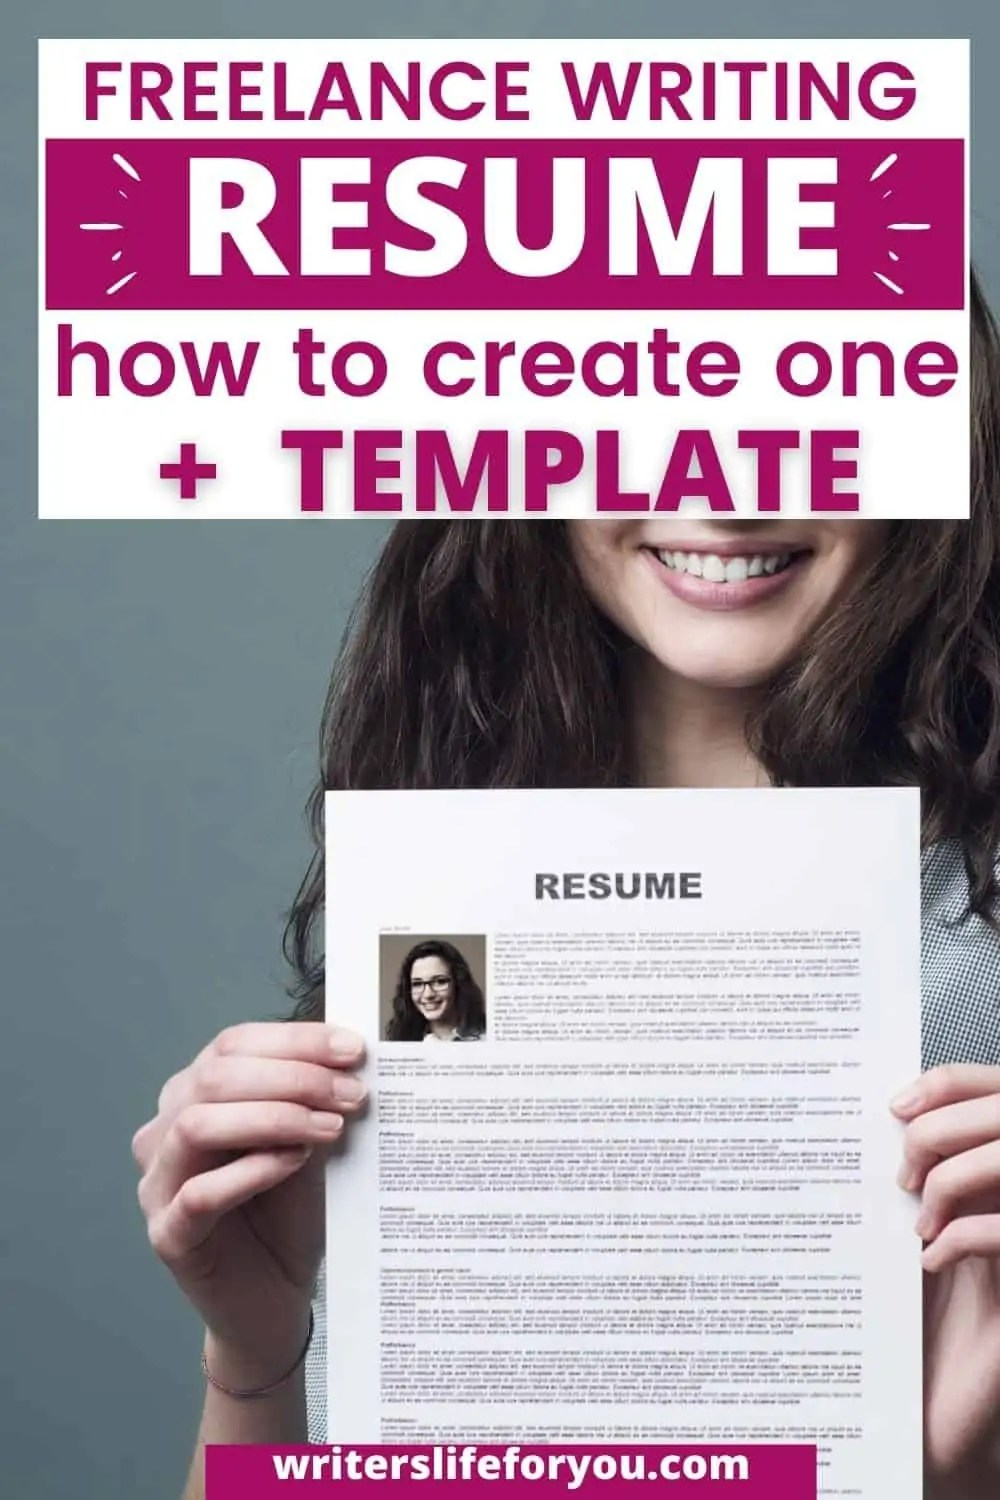 How to Create a Professional Freelance Writing Resume that Wins You the Job